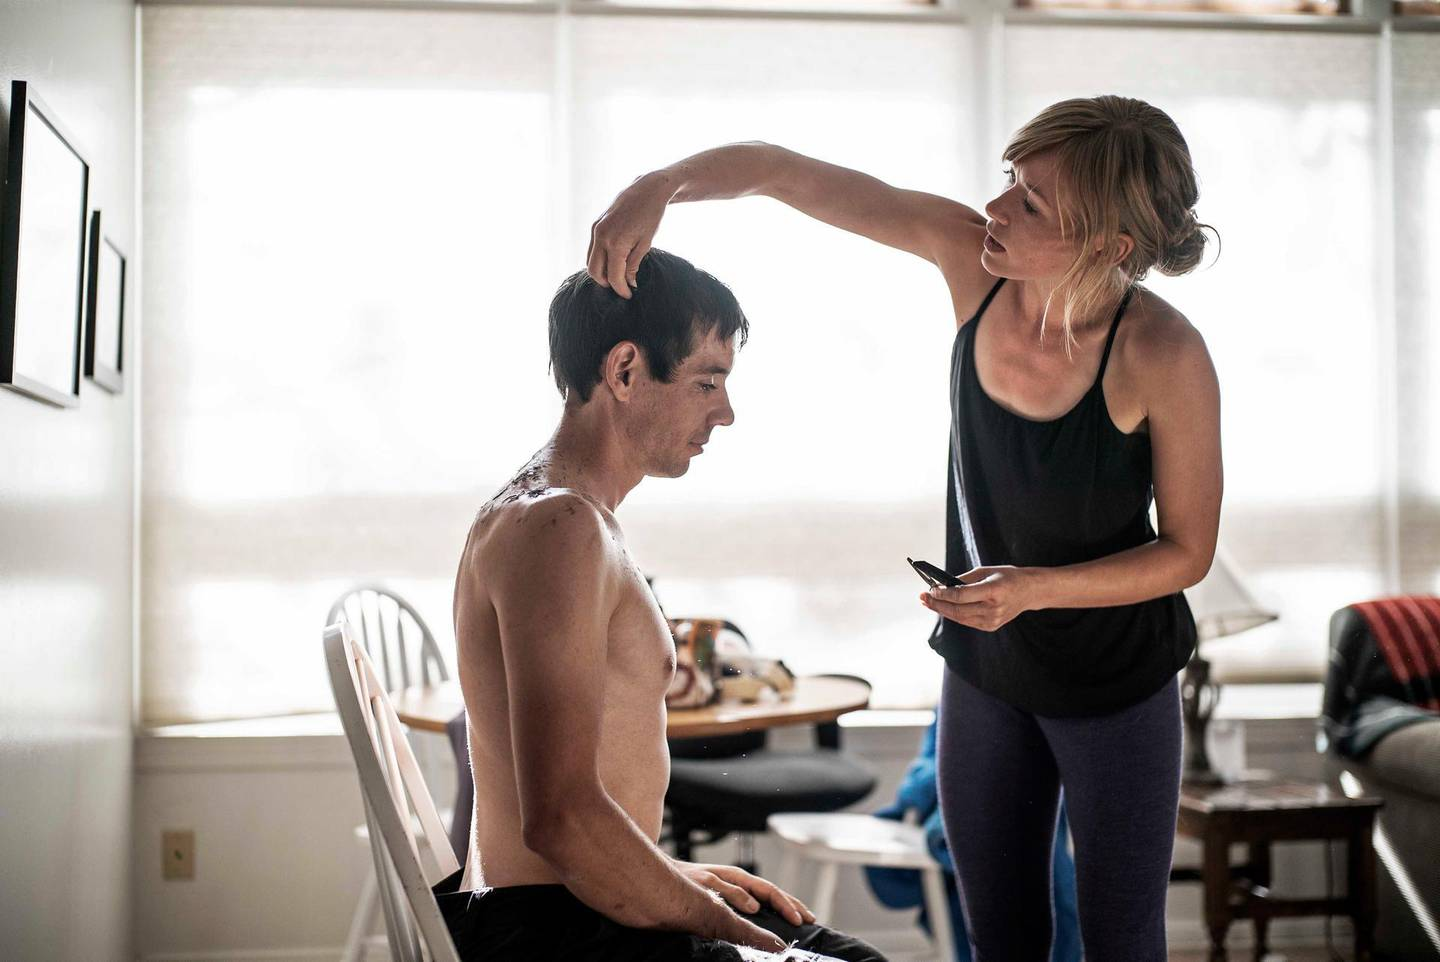 Alex Honnold getting his haircut by his girlfriend Sanni McCandless before attempting his free solo of El Cap. (National Geographic/Jimmy Chin)